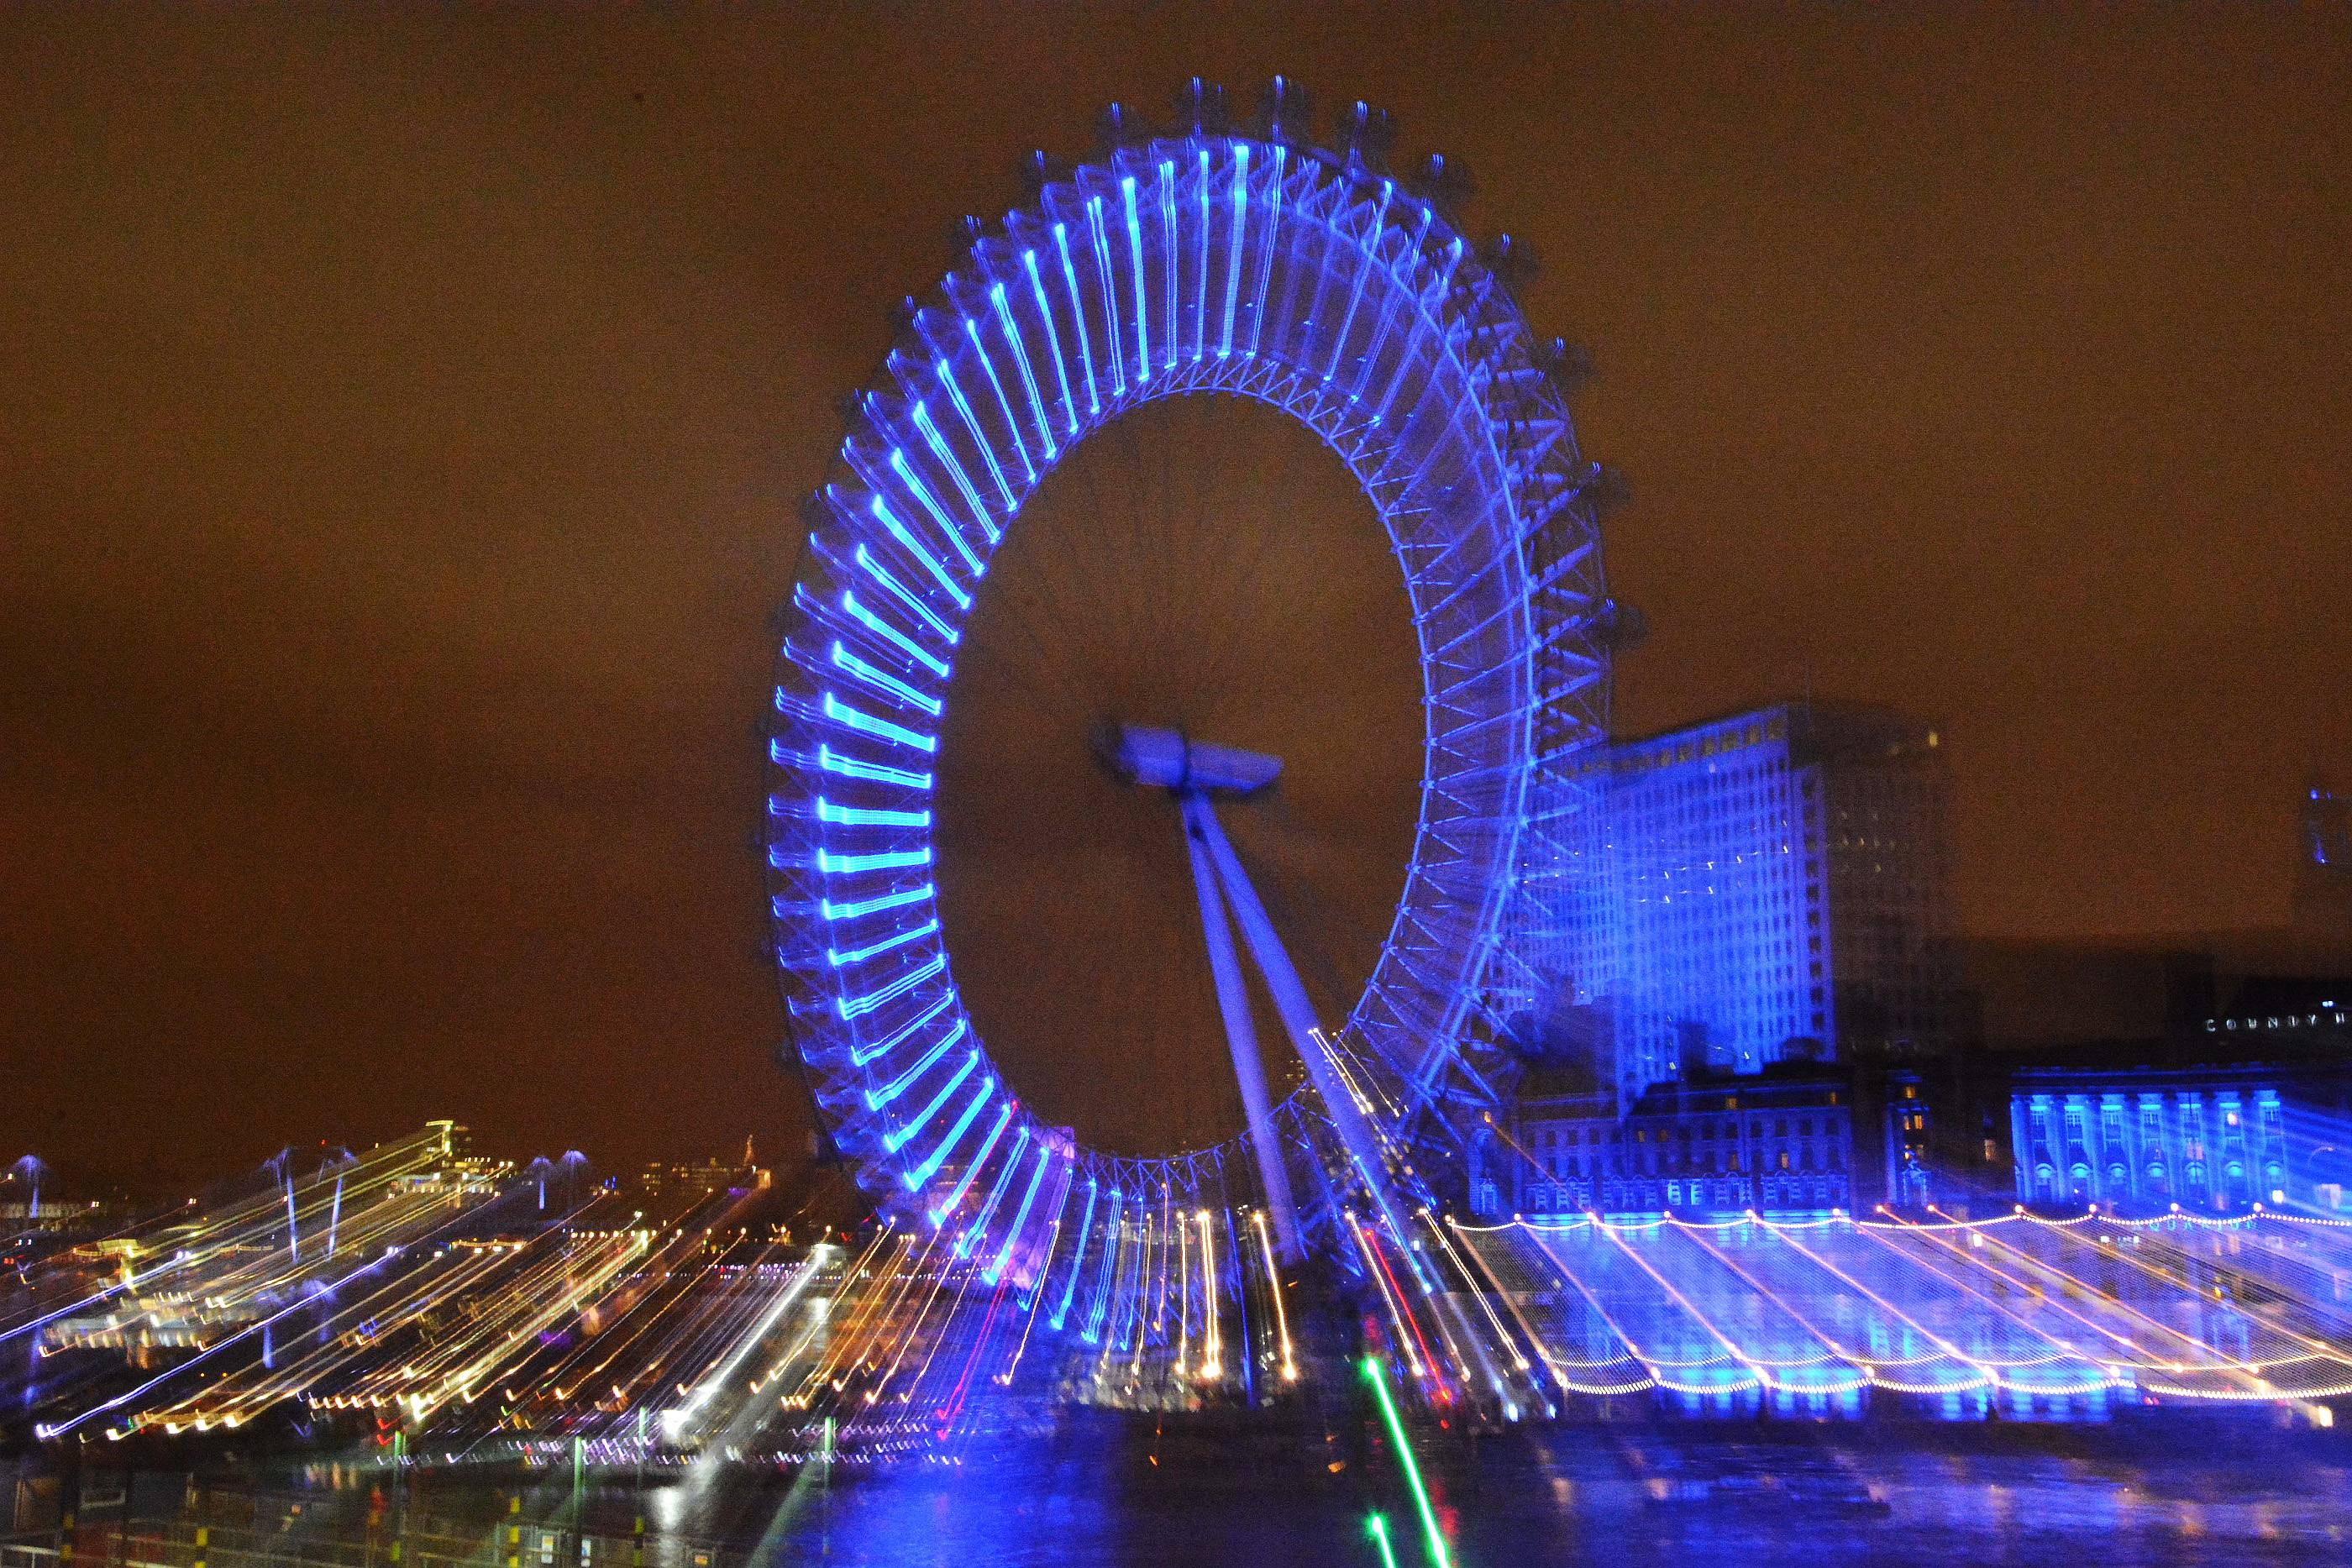 Upon a recent business trip to London, I decided to try a technique that I've been reading about recently in which you roll the lens zoom during an extended exposure. The photo of the London Eye is something totally different than you would get during the day.